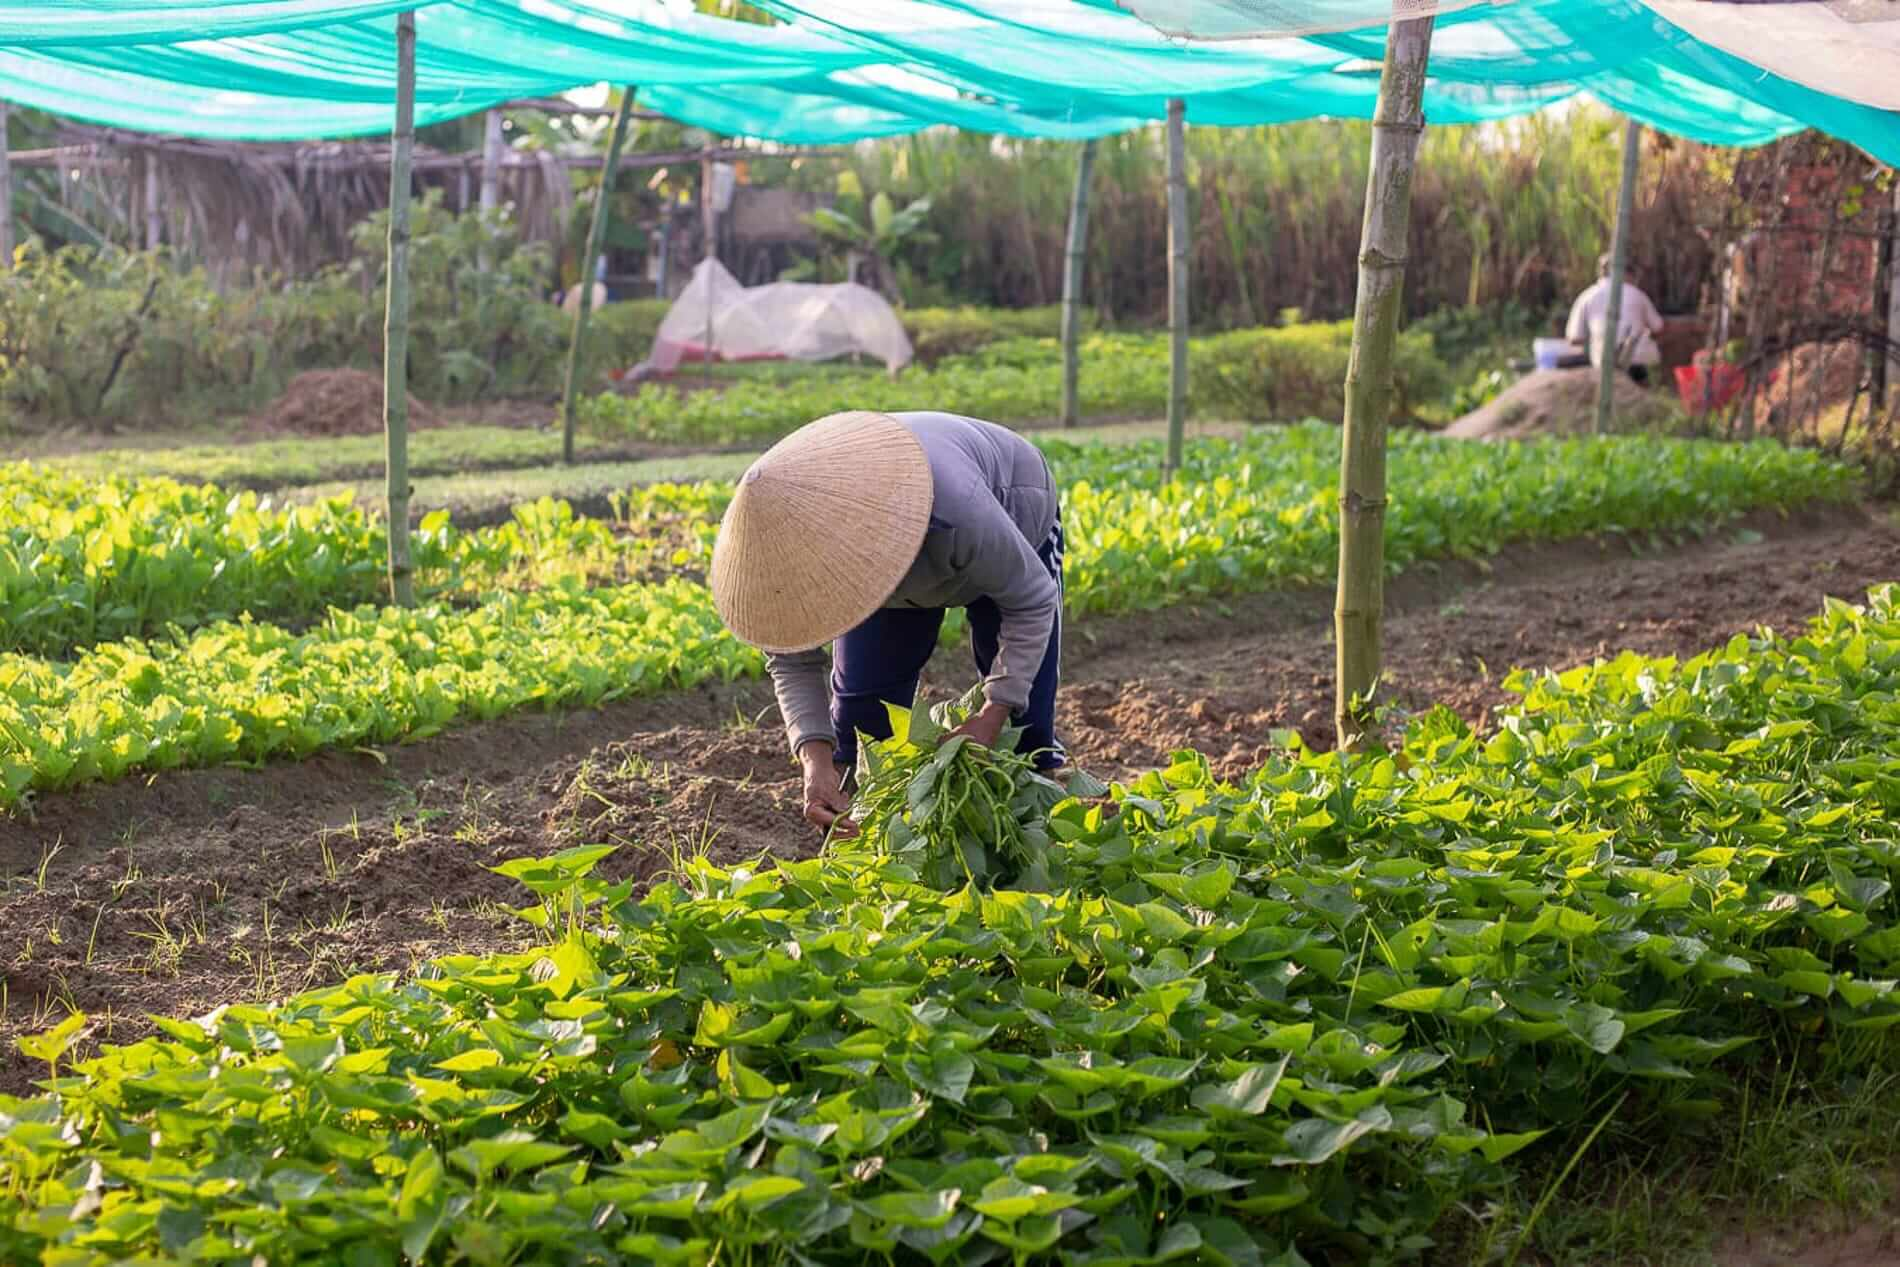 A farmer at work in Hoi An's Tra Que Vegetable Village